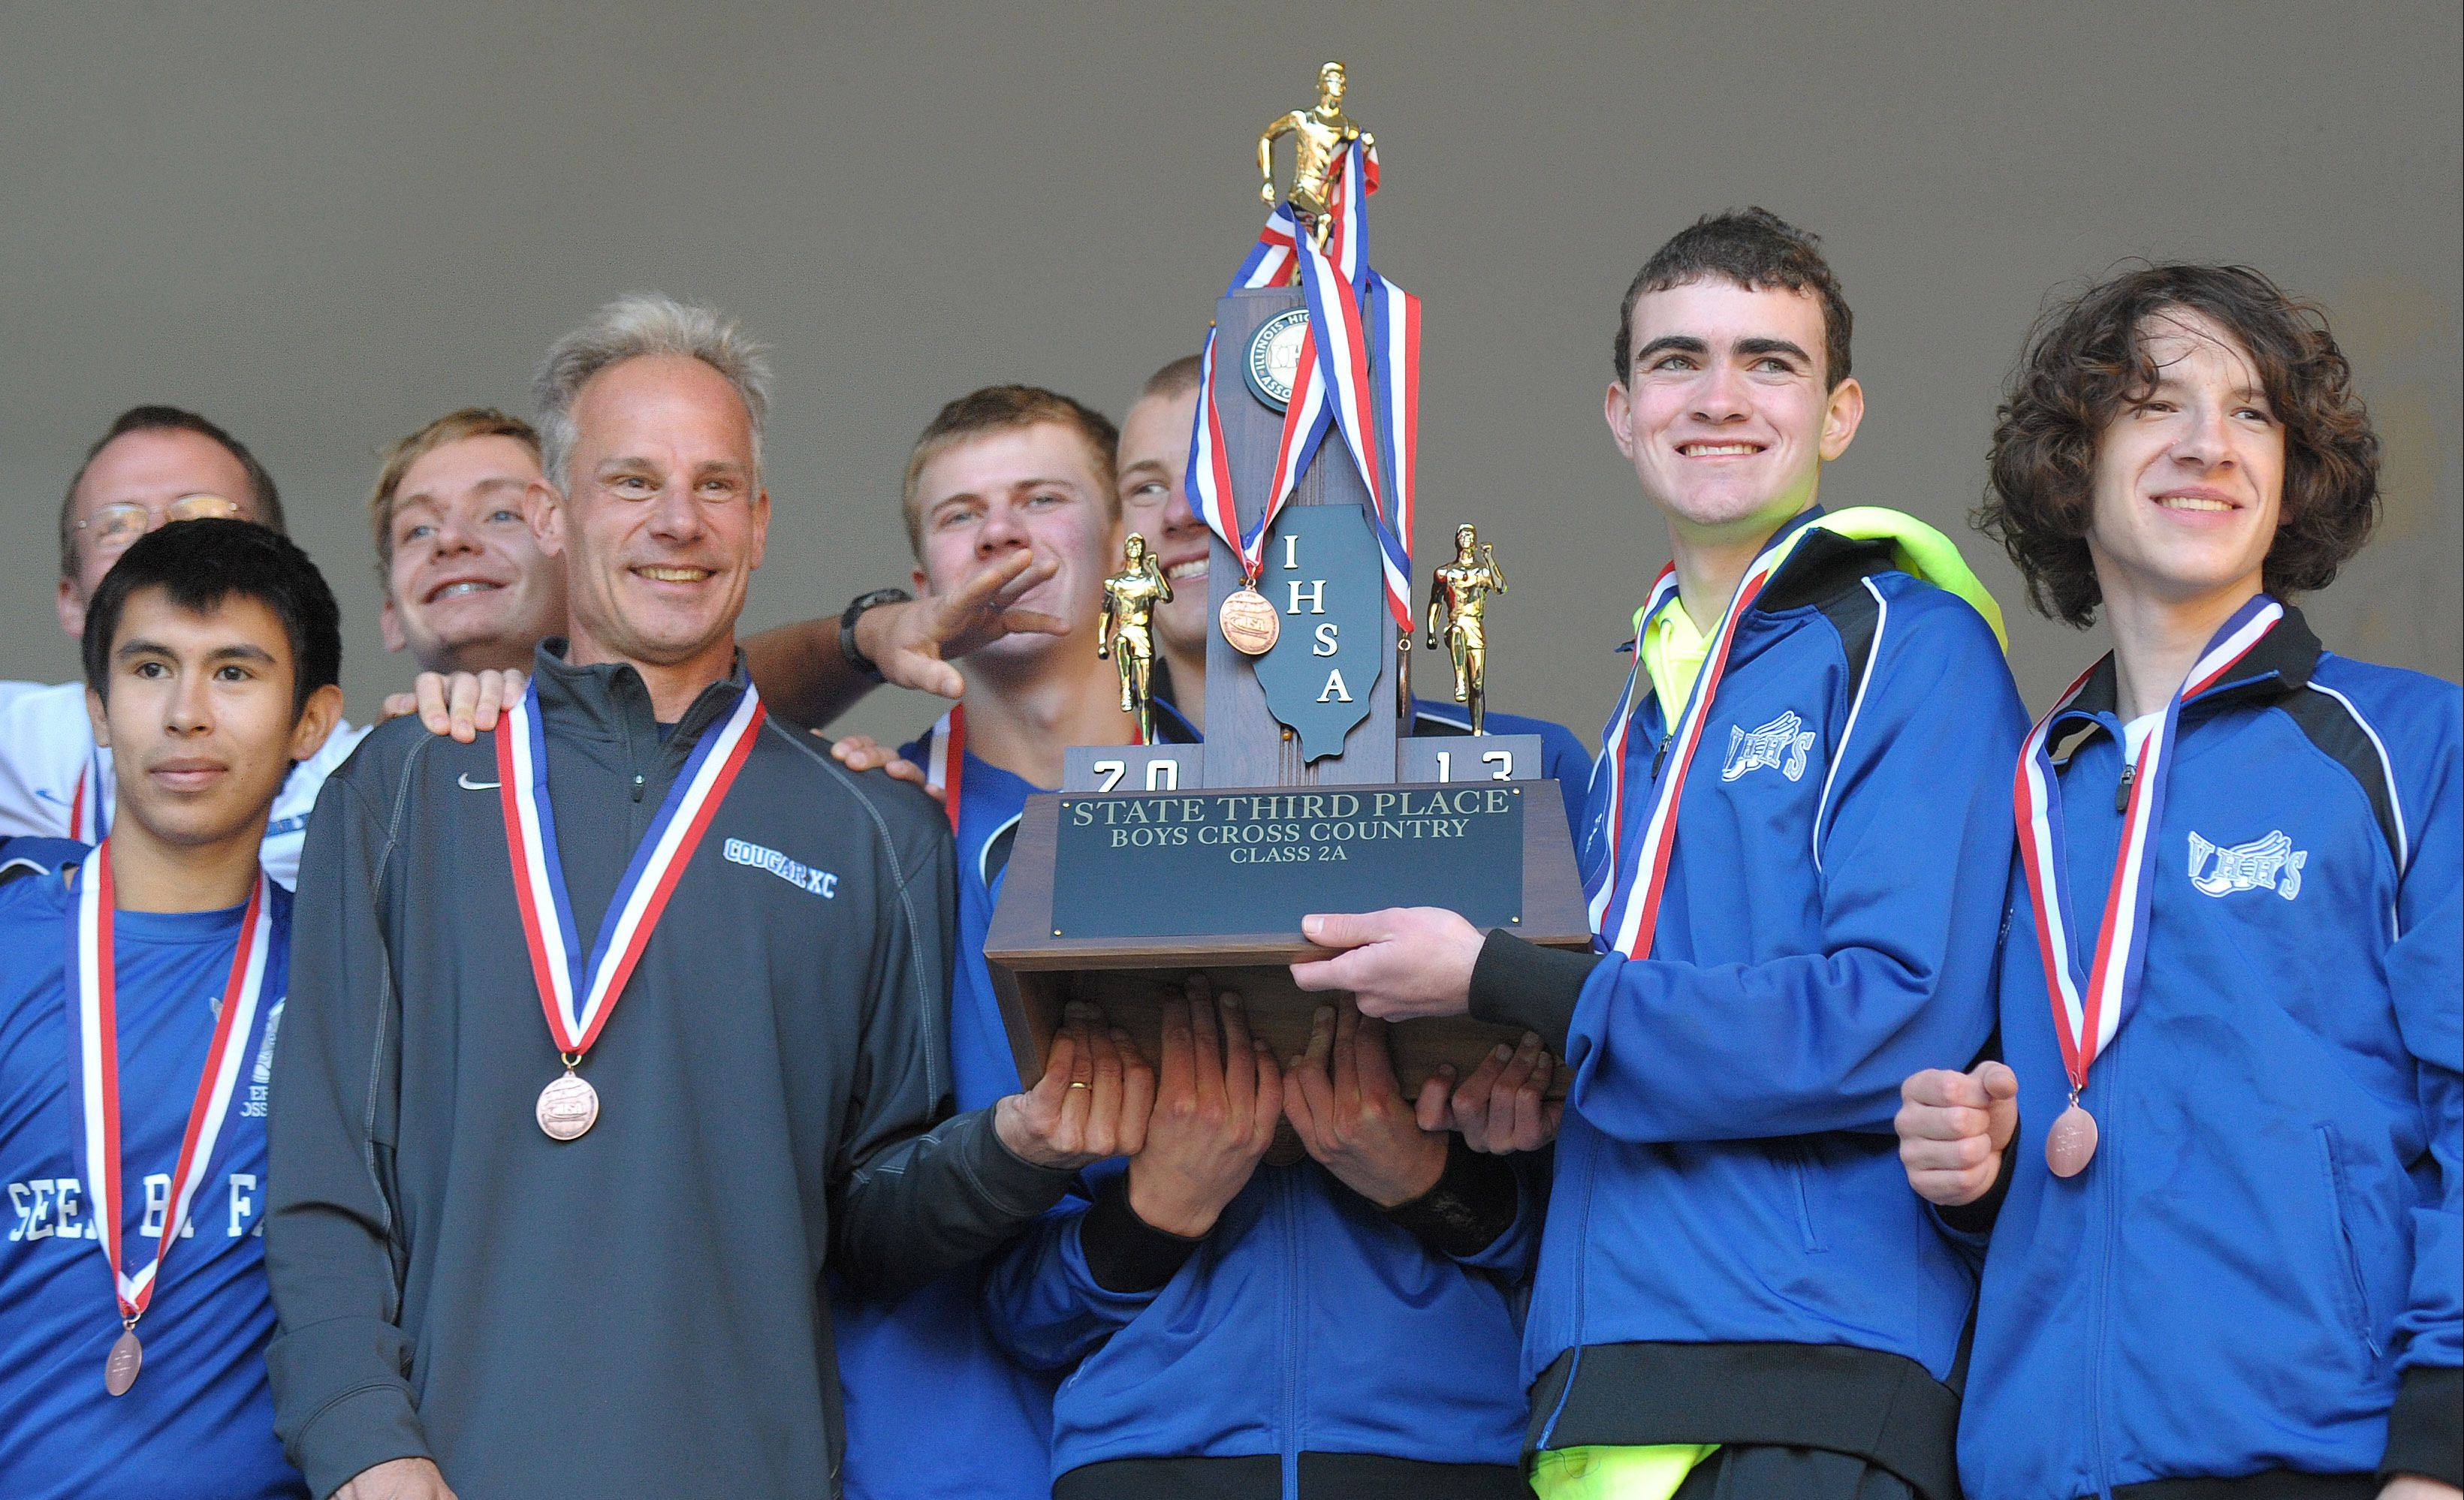 Vernon Hills claims its third-place Class 2A state trophy at Detweiller Park in Peoria on Saturday.